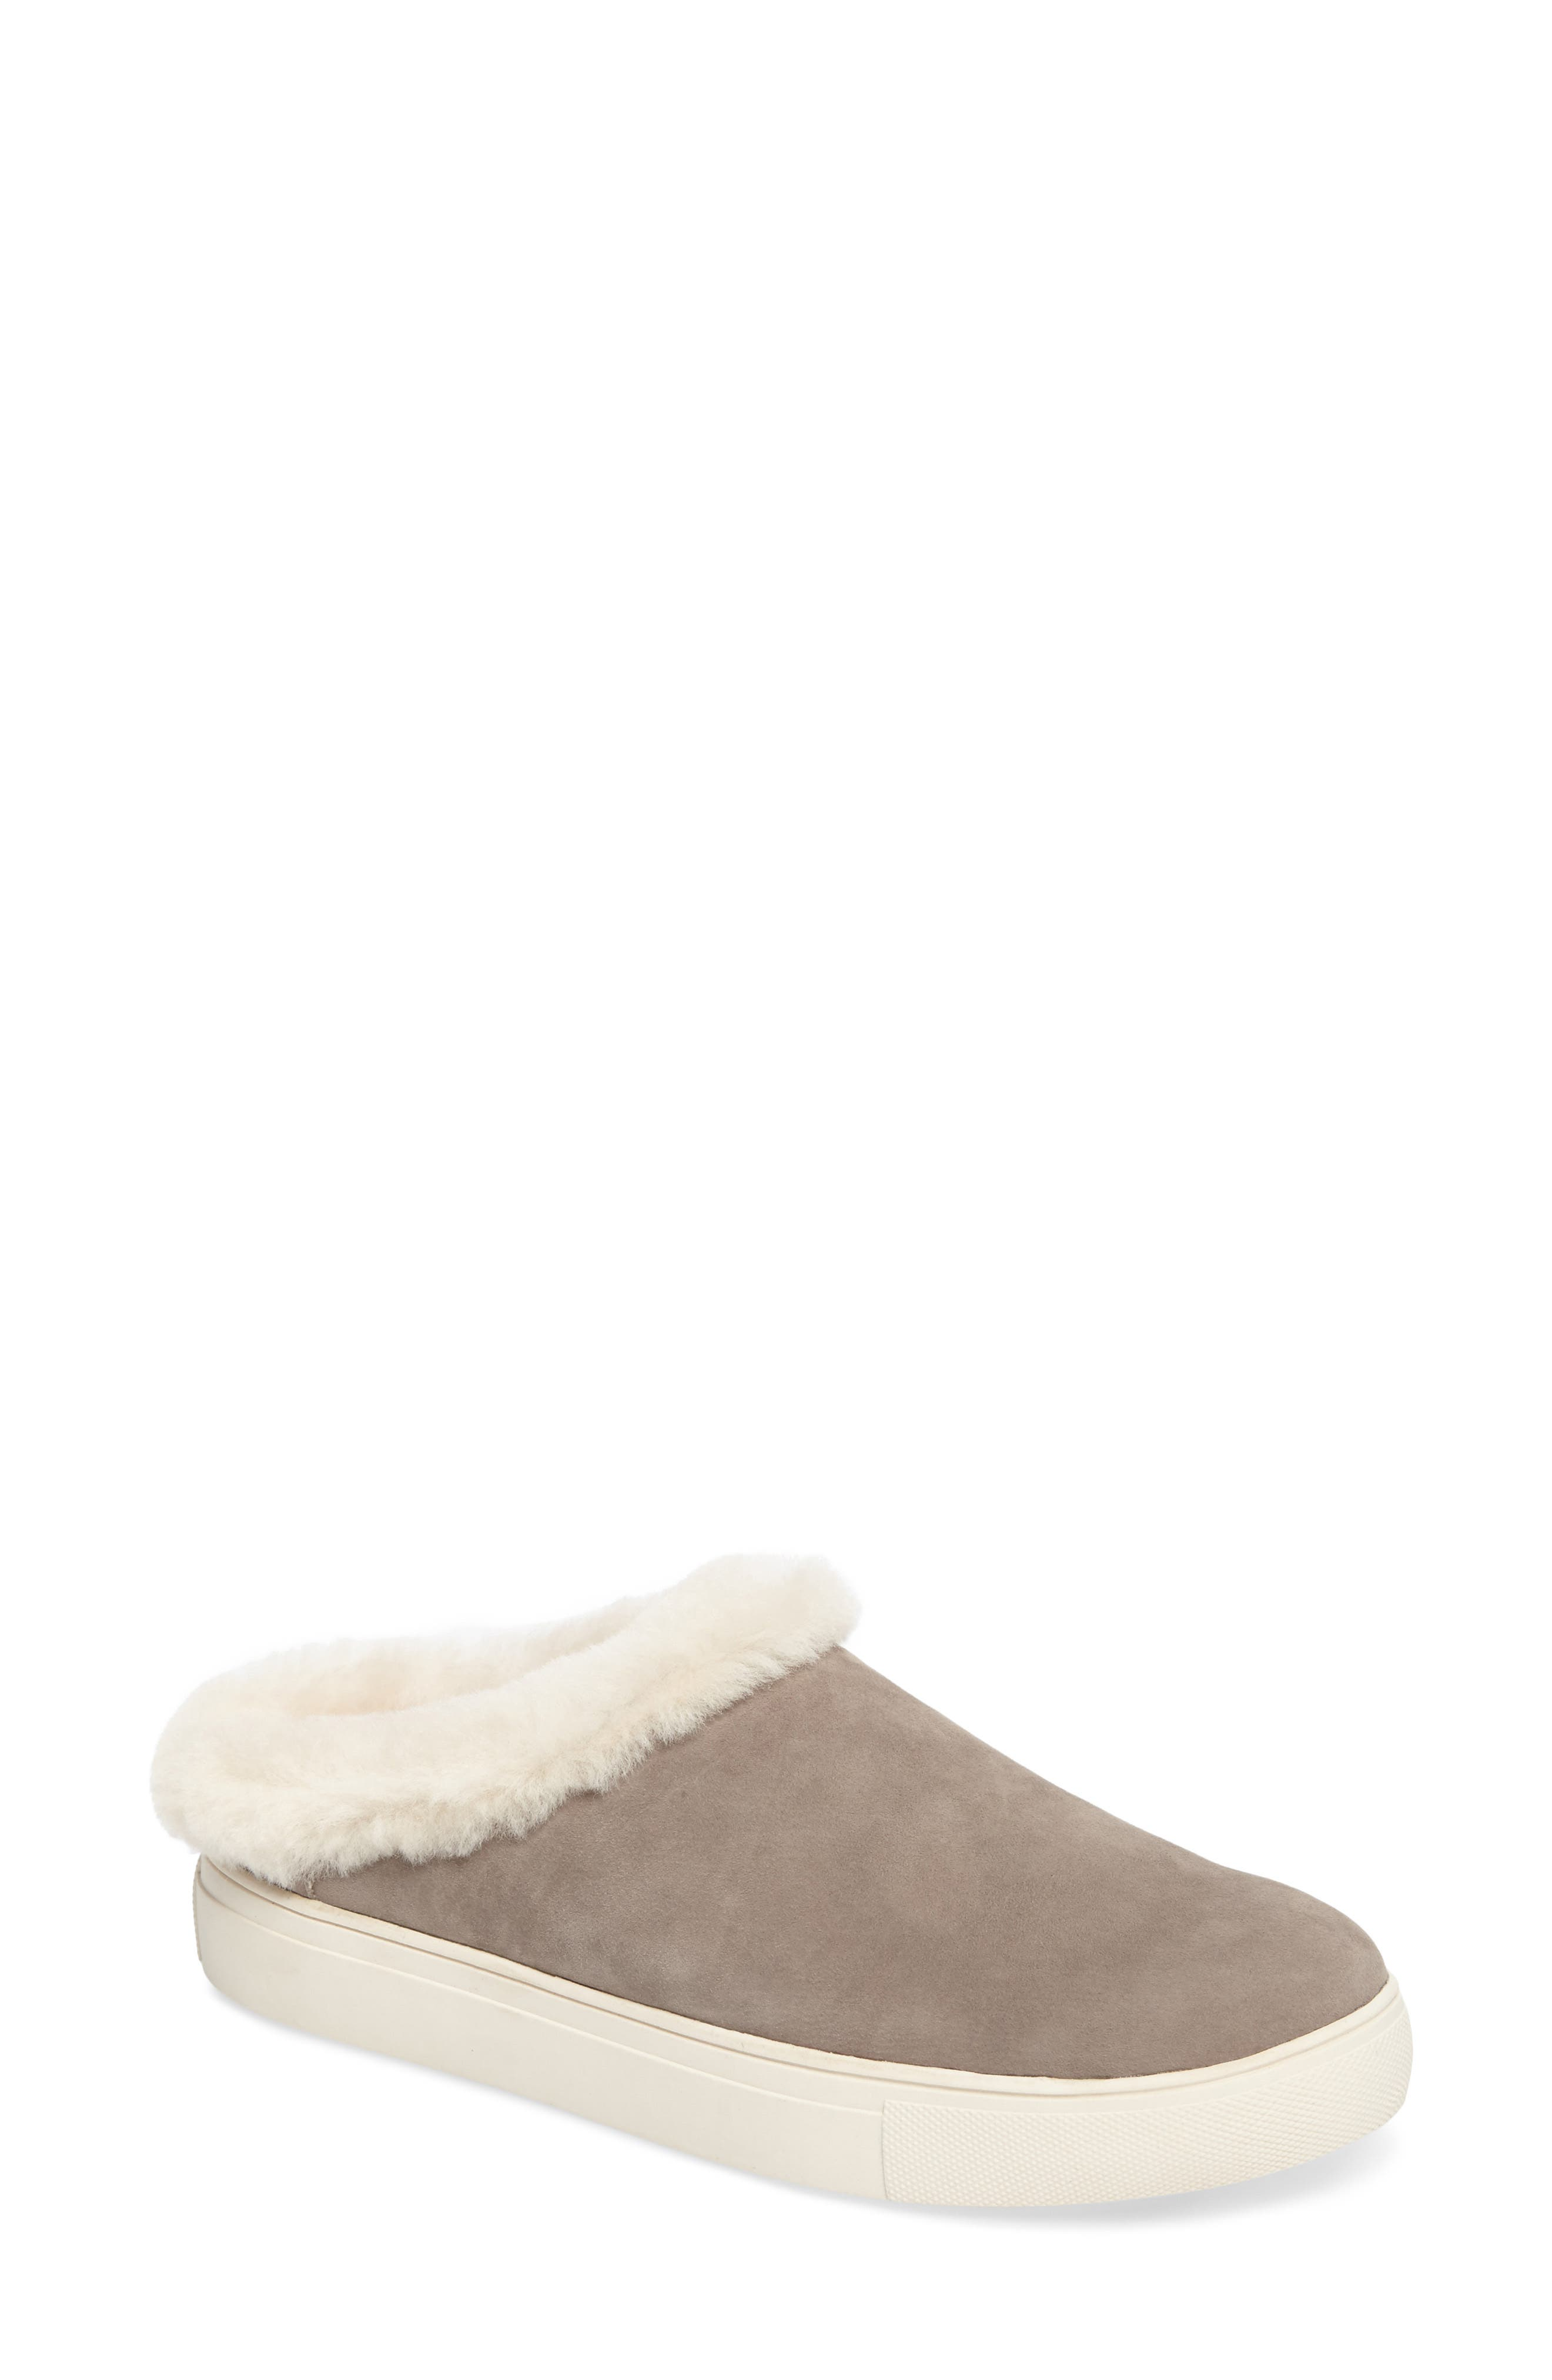 Alternate Image 1 Selected - Sudini Leia Genuine Shearling Lined Slip-On (Women)